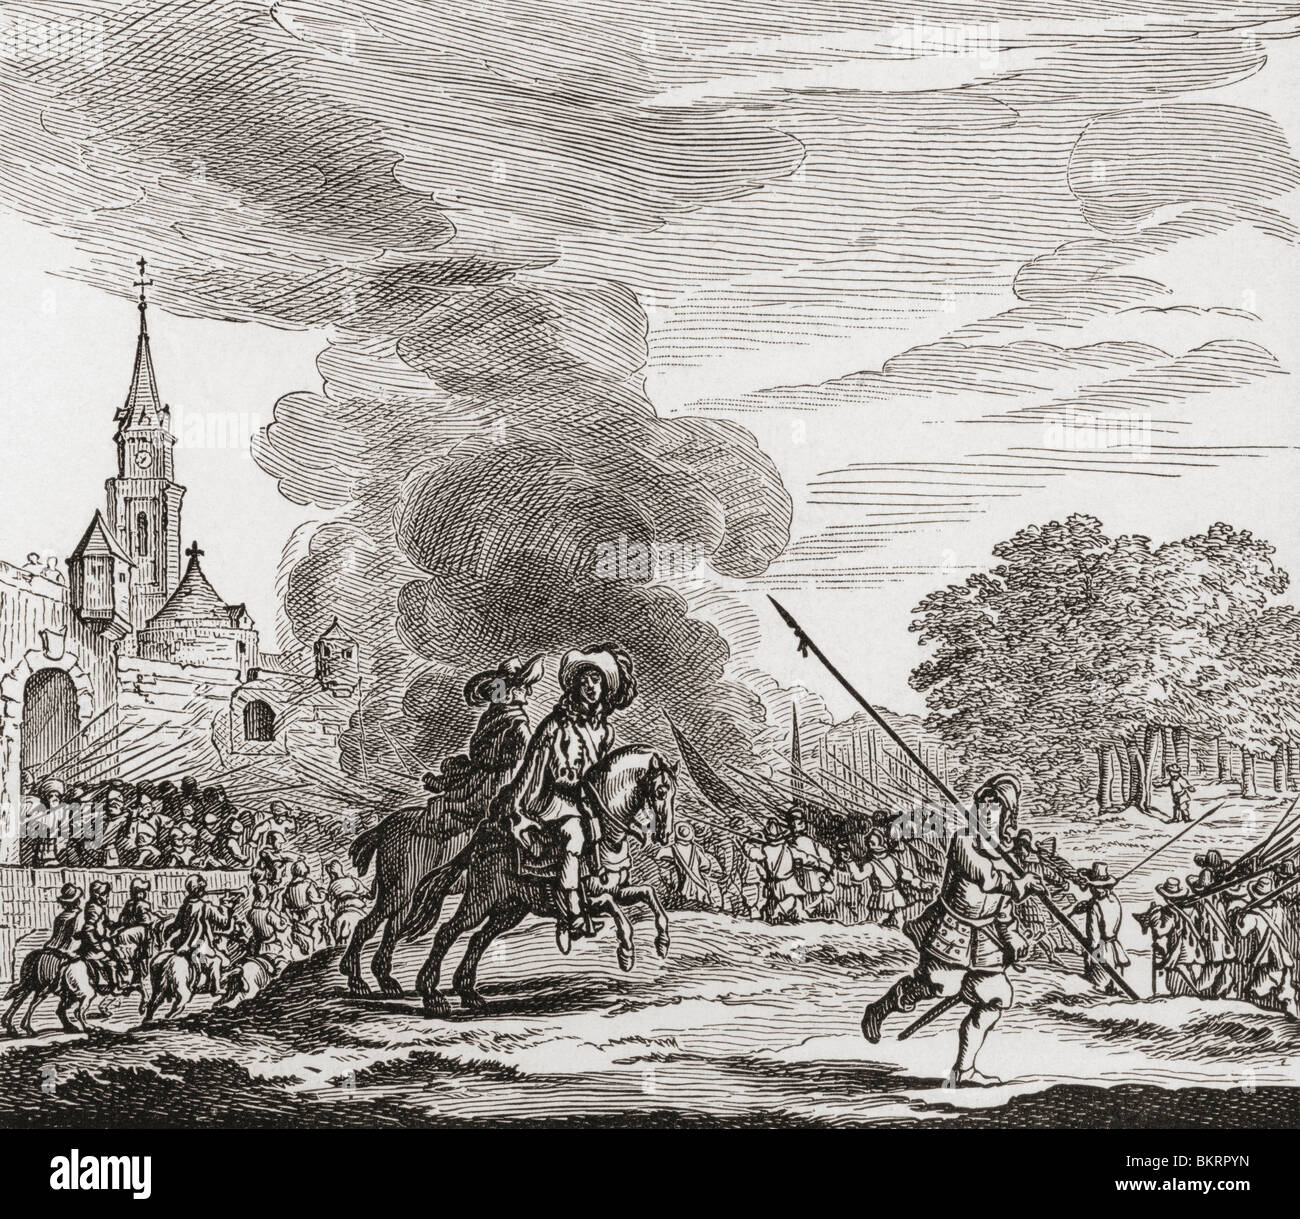 King Charles II escaping after the Battle of Worcester in 1651. - Stock Image